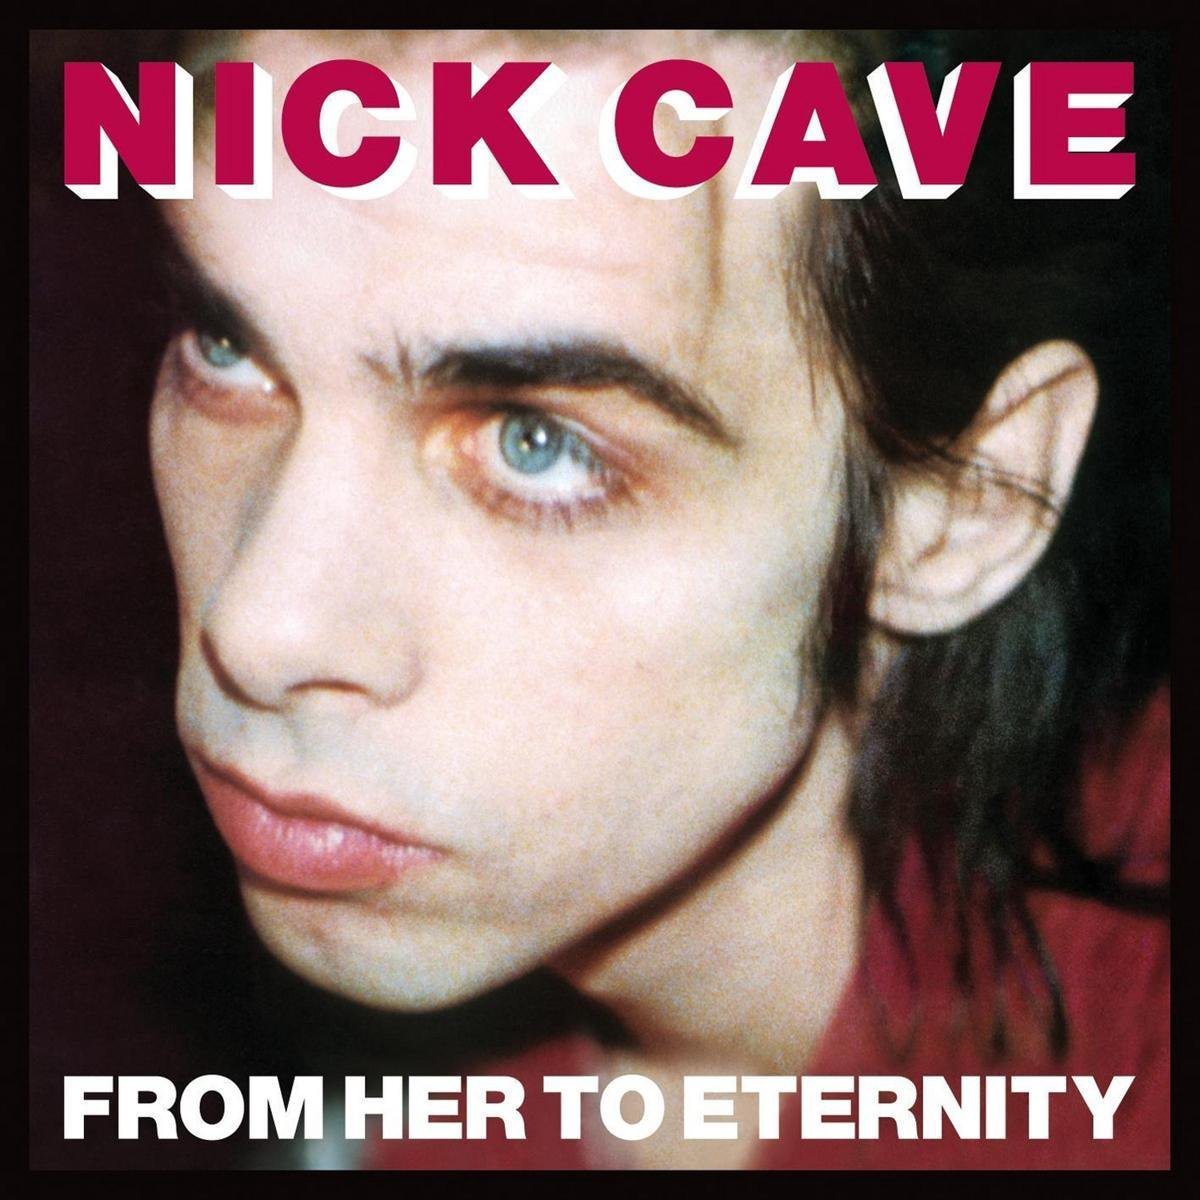 From Her To Eternity (2009 Digital - Nick Cave & The Bad Seeds